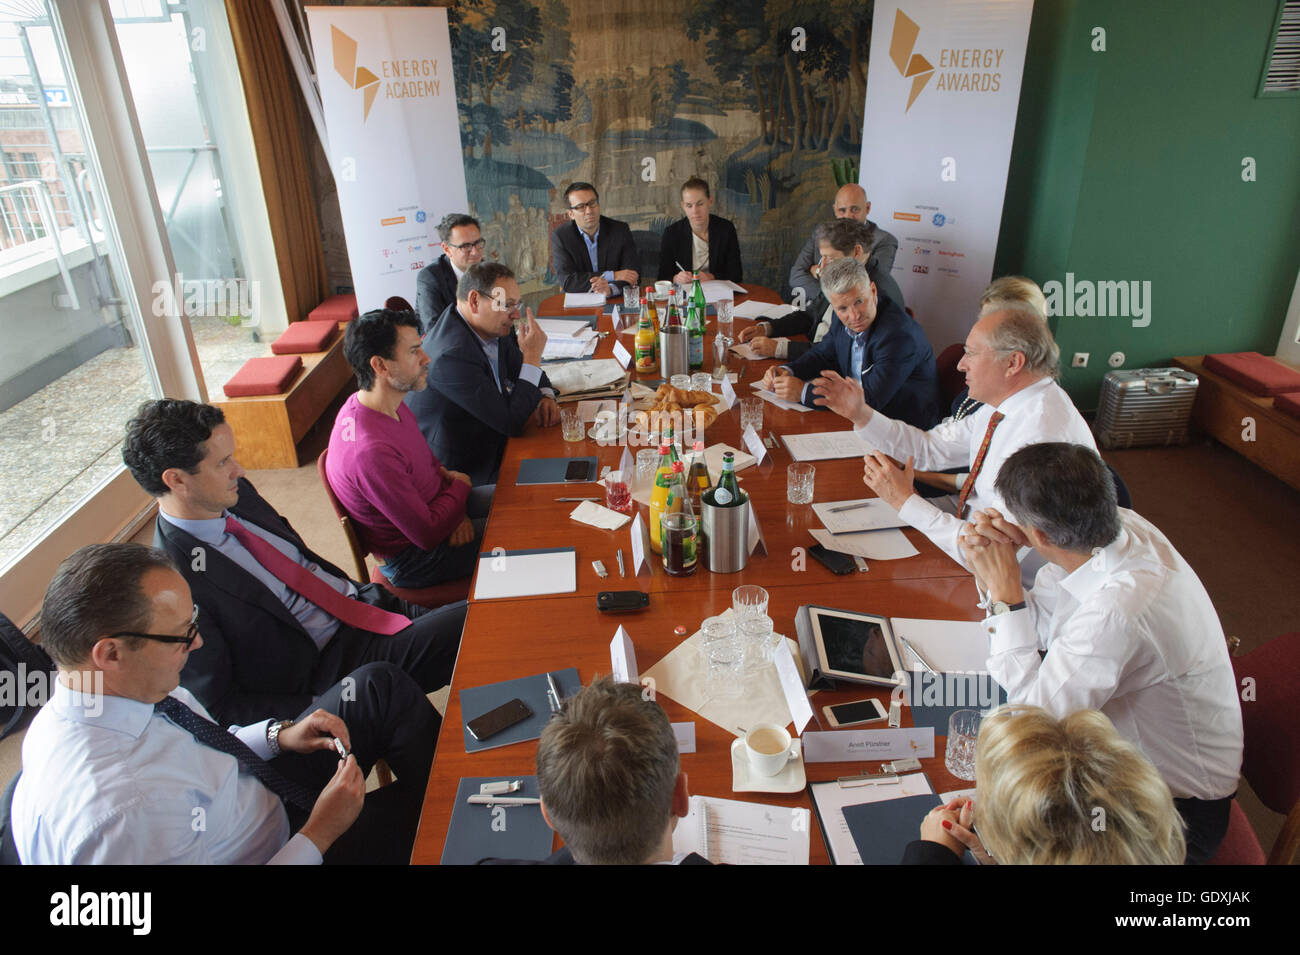 Event of the Energy Academy in the PanAm Lounge - Stock Image